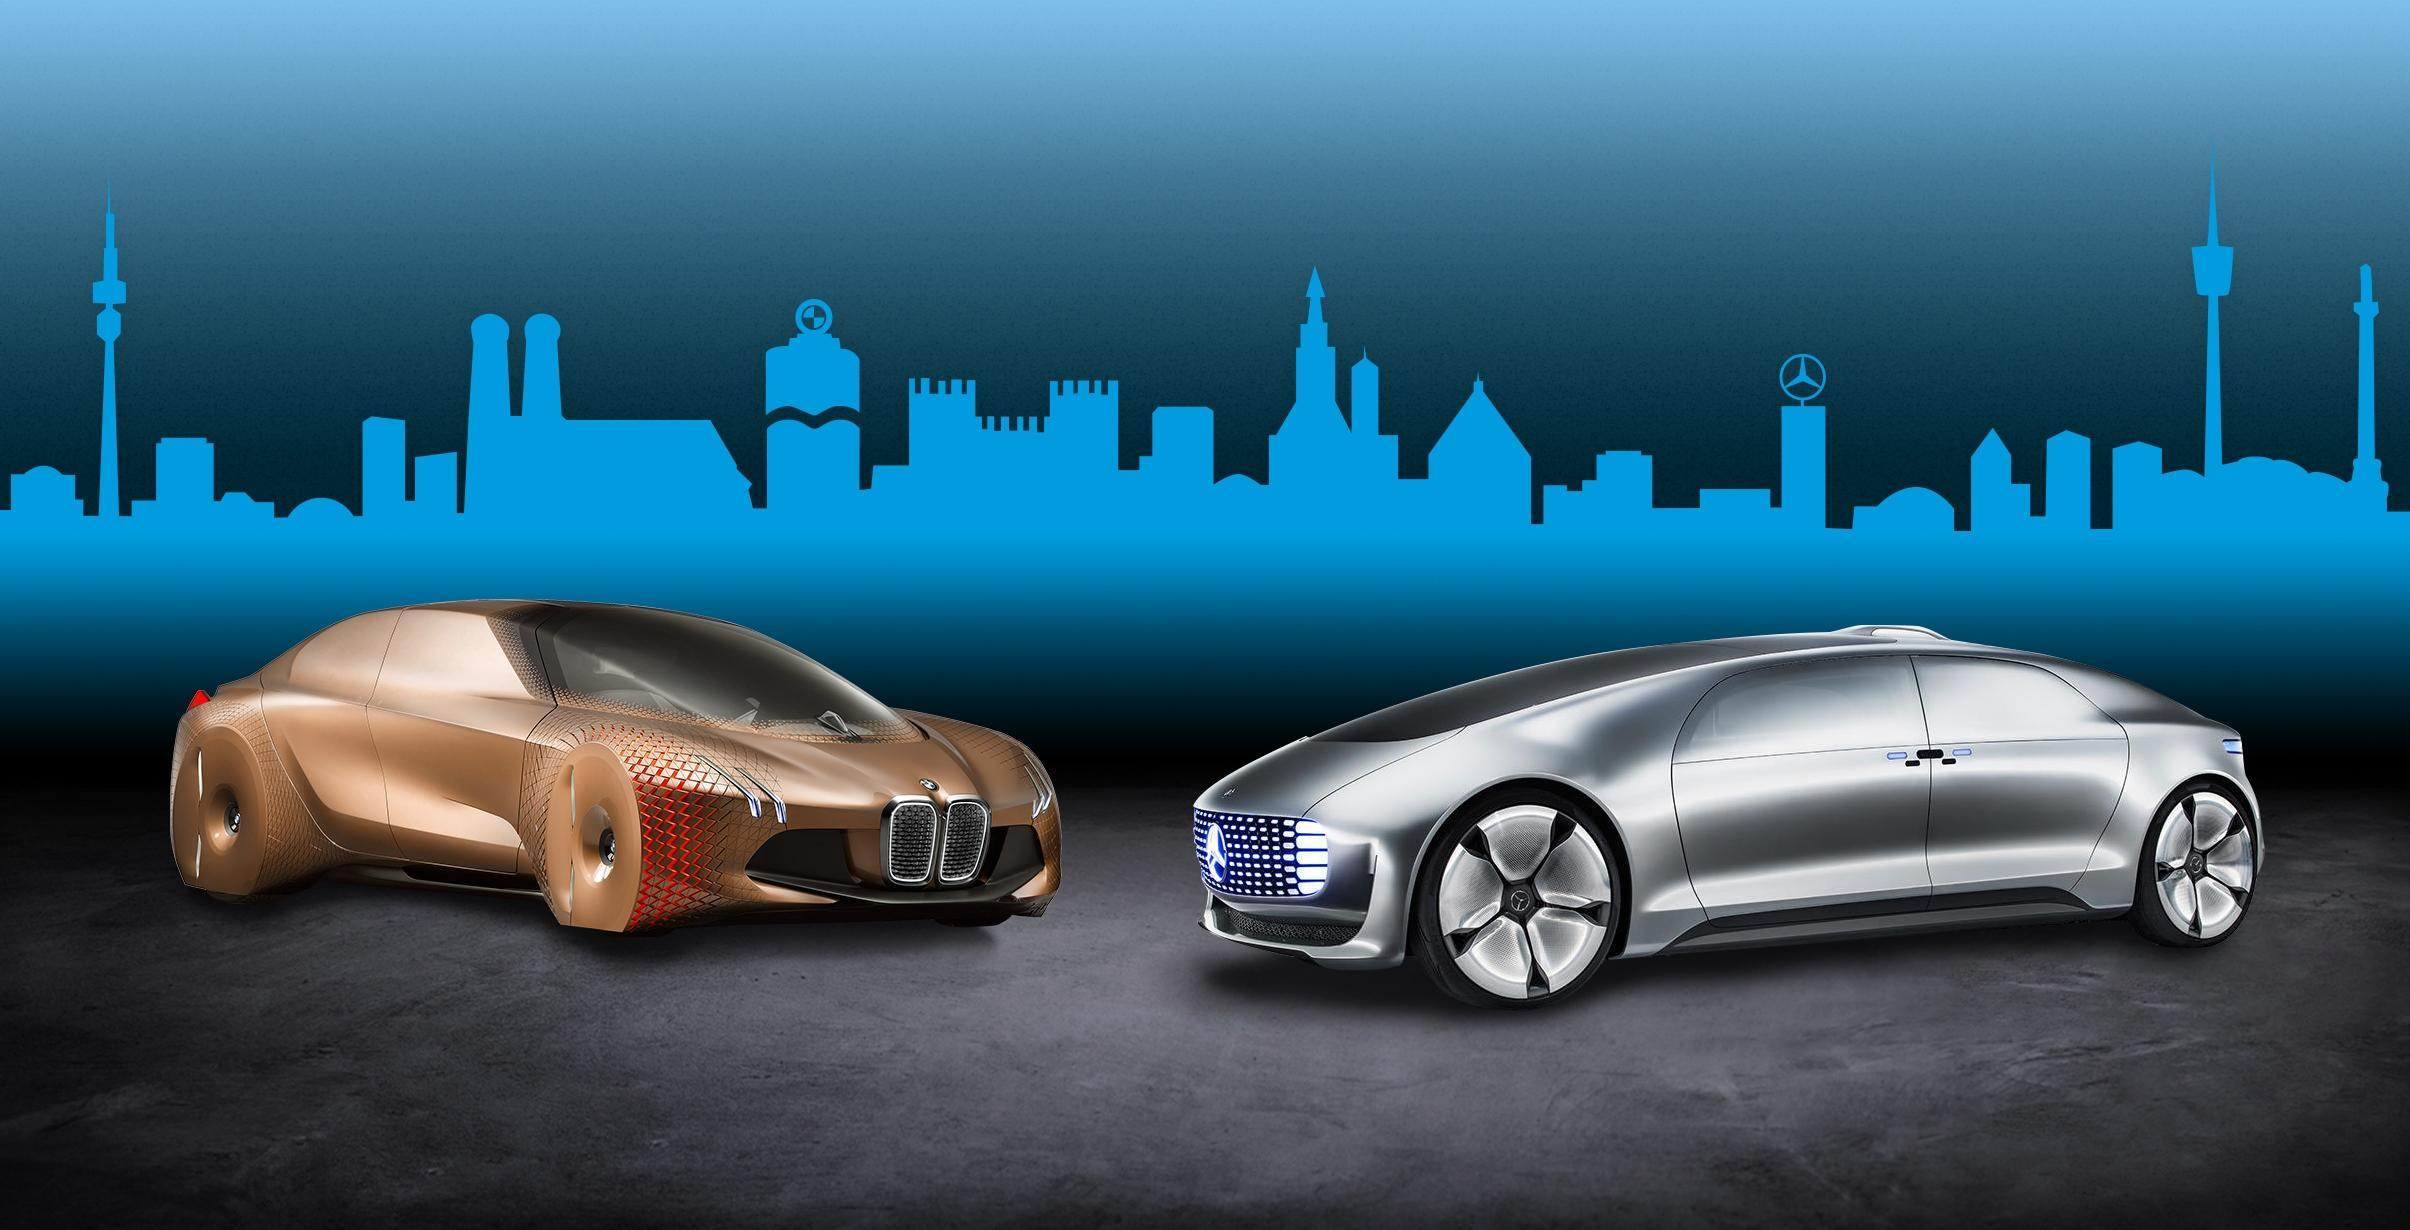 BMW and Daimler are teaming up to develop almost autonomous vehicles